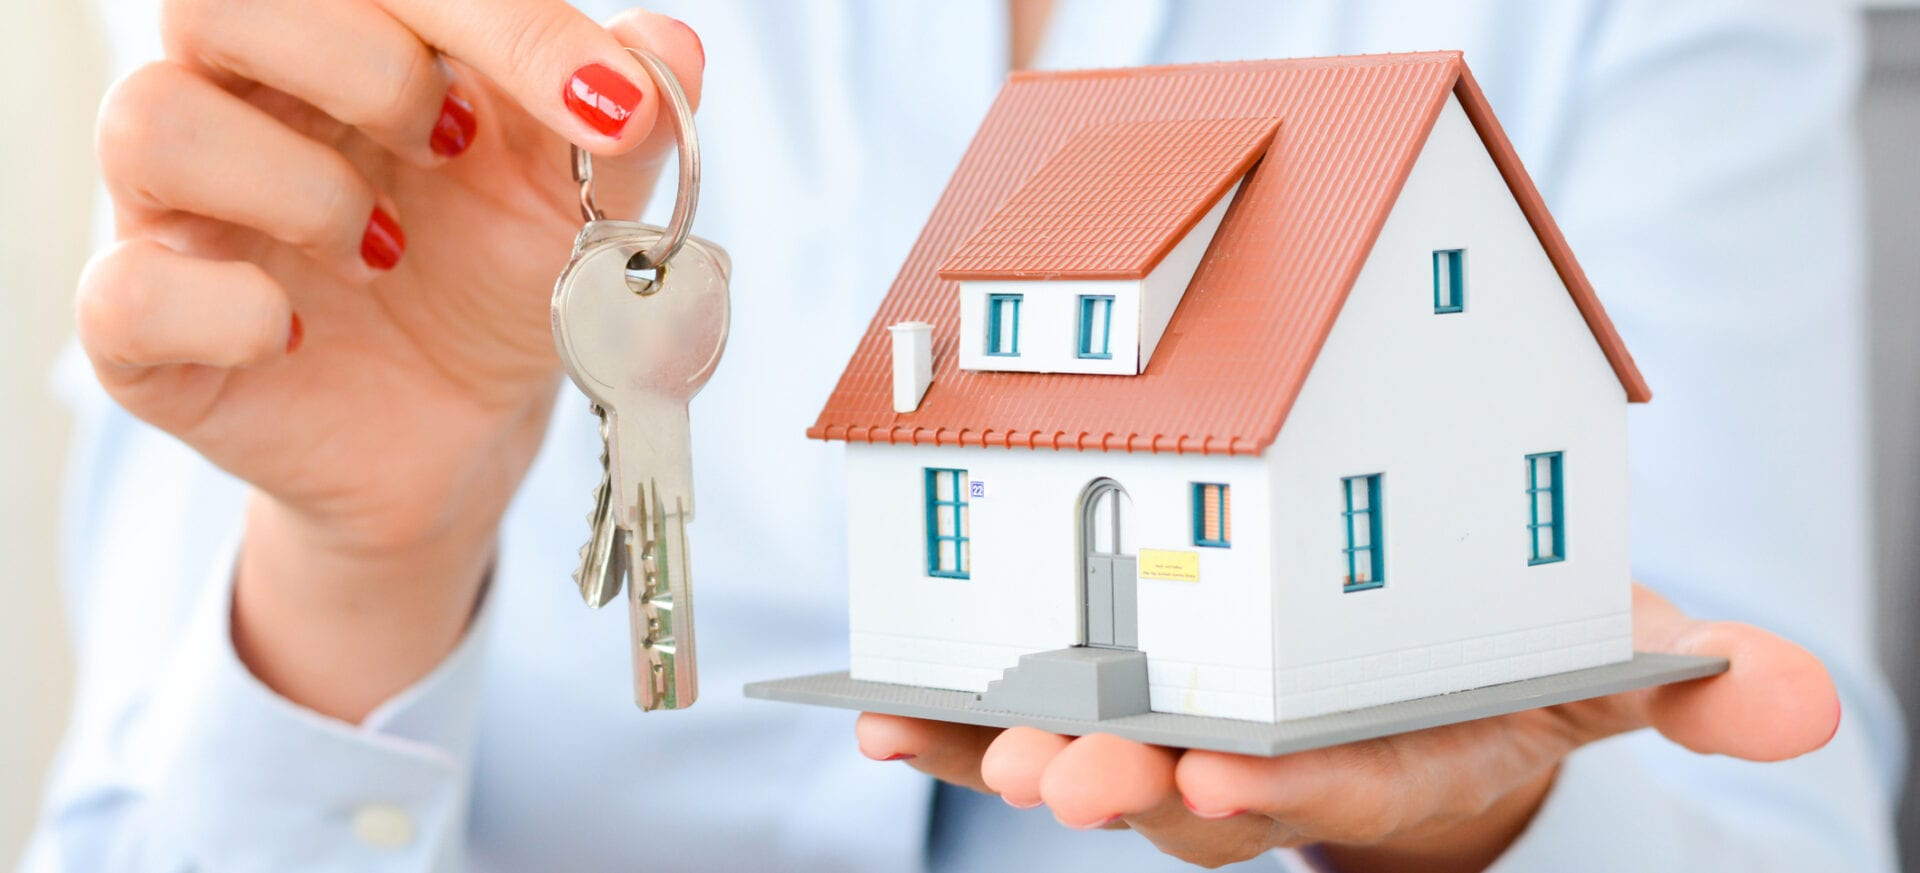 uying a house concept with woman hands holding a model house and house keys